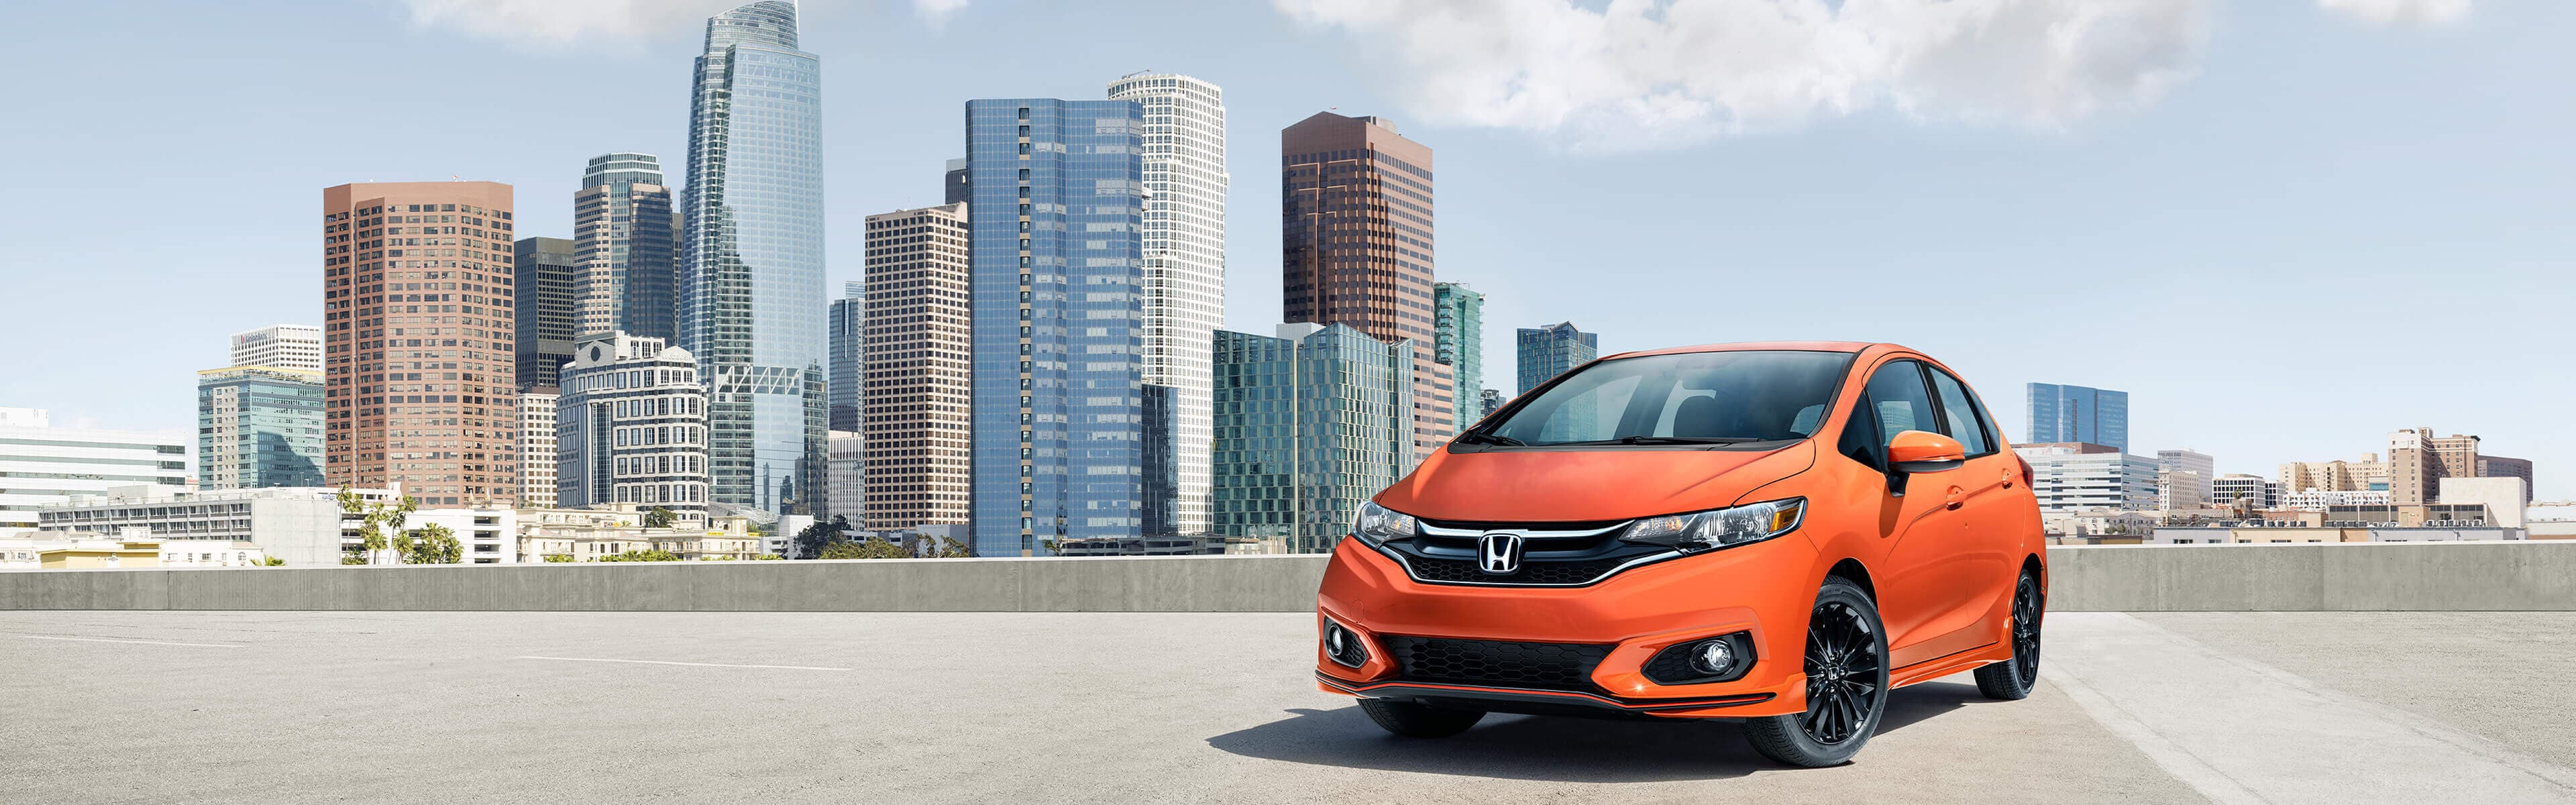 2019 Honda Fit Vehicles For Sale In New Glasgow Ns Ceilidh Honda